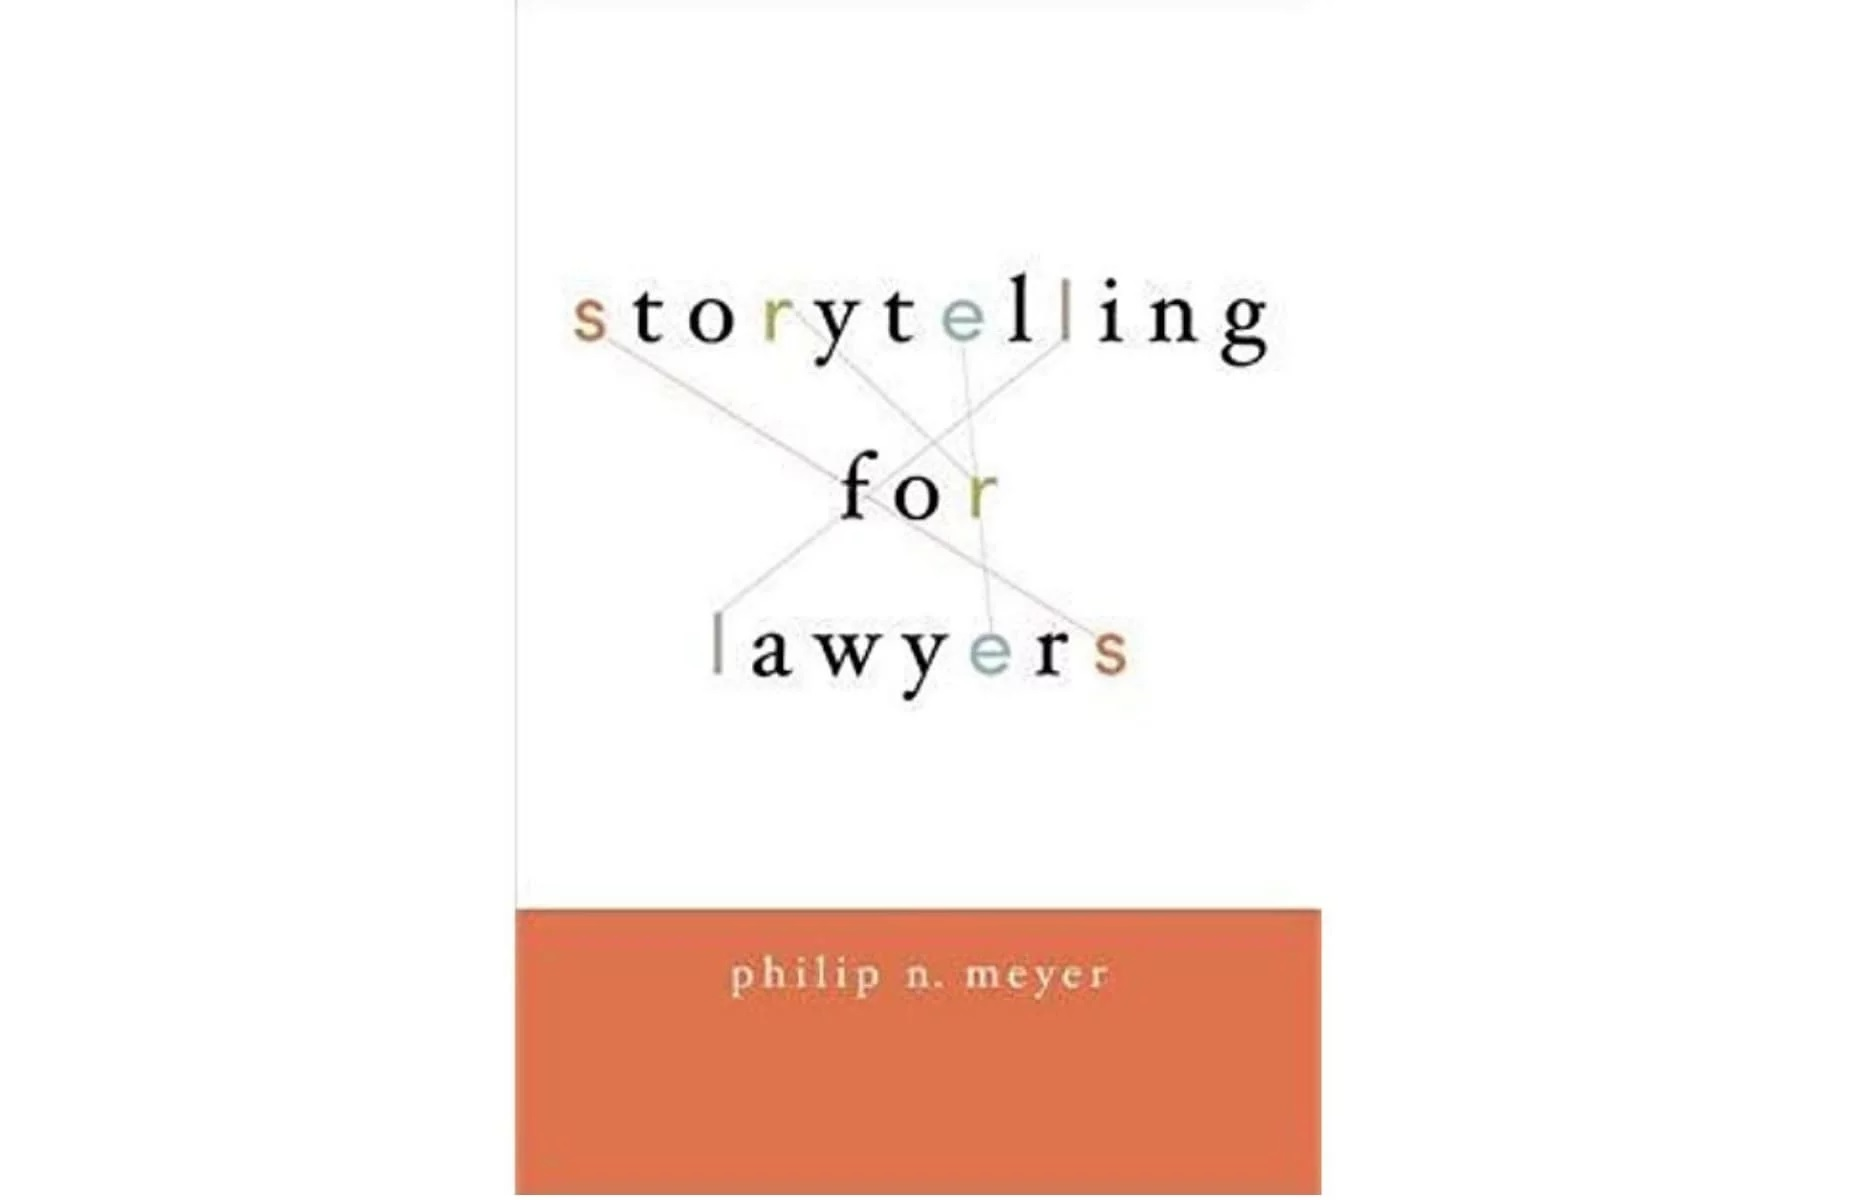 #5 Storytelling-for-lawyers